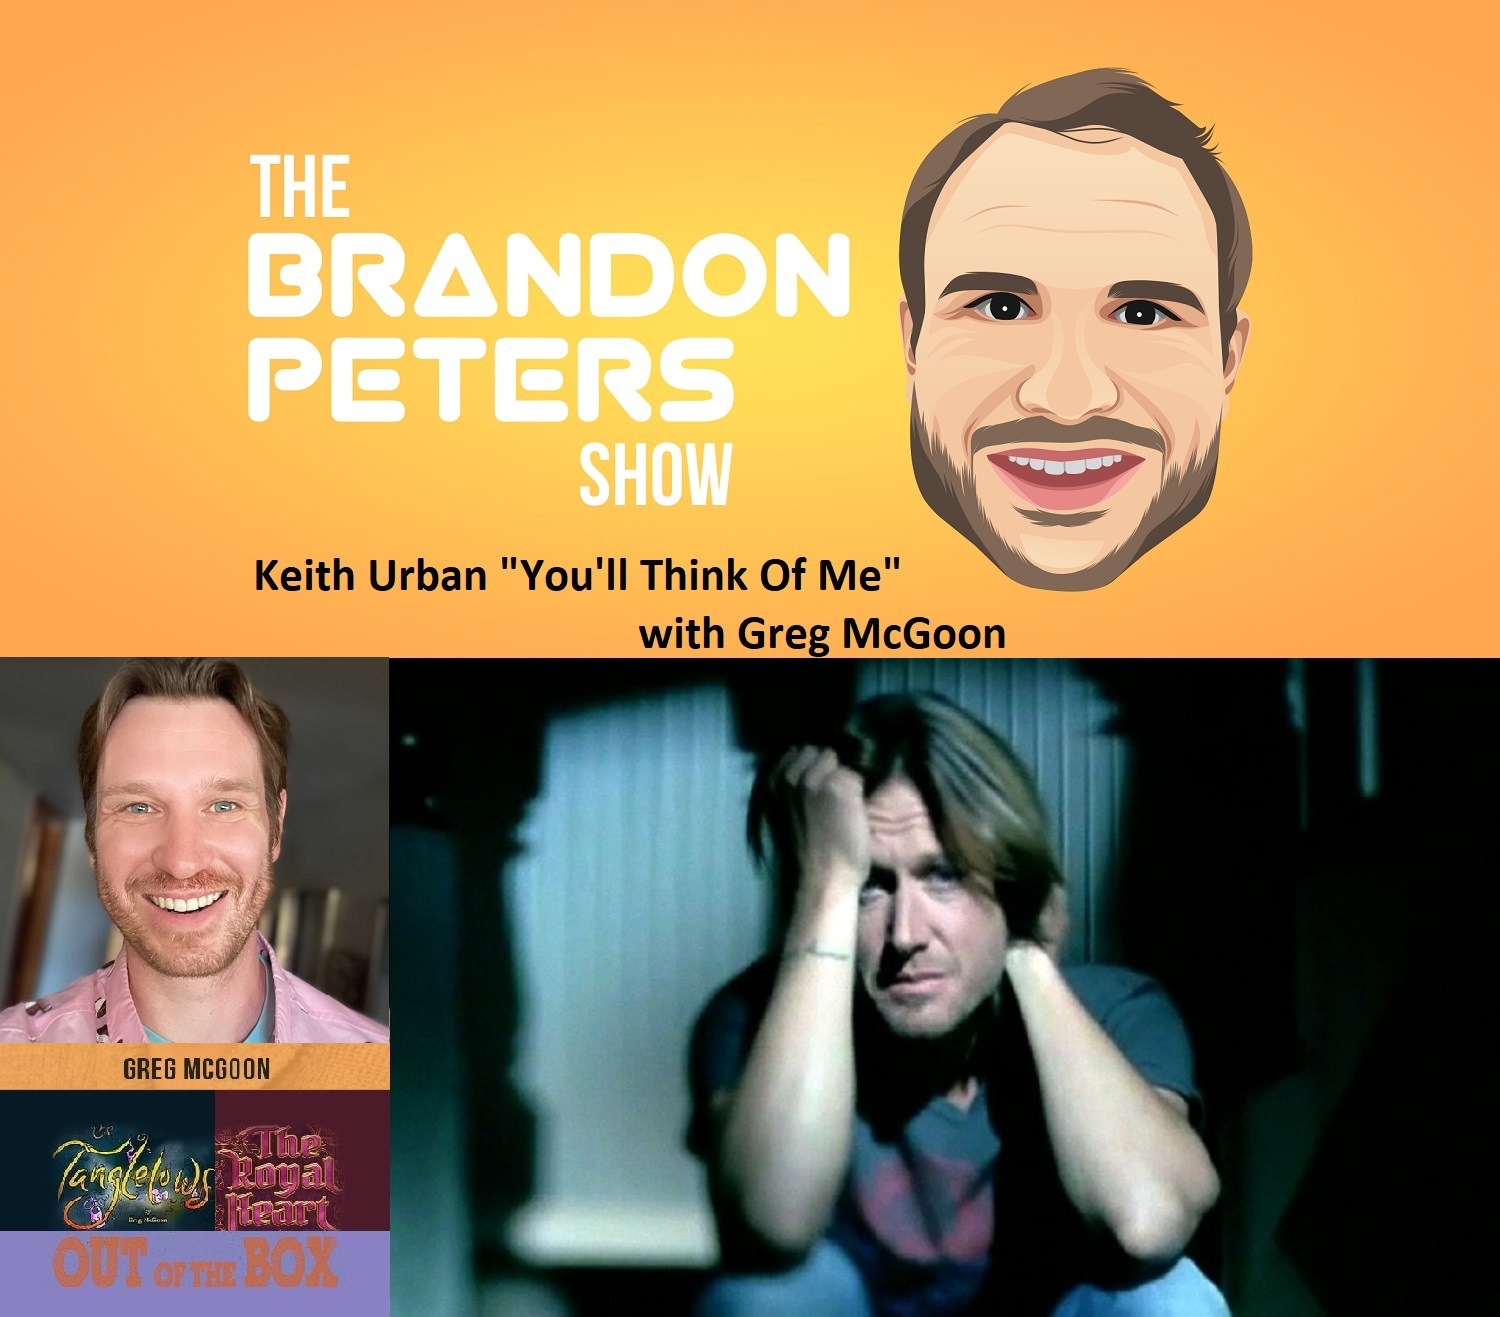 """Closing With A Song """"You'll Think Of Me'"""" by Keith Urban with Greg McGoon"""